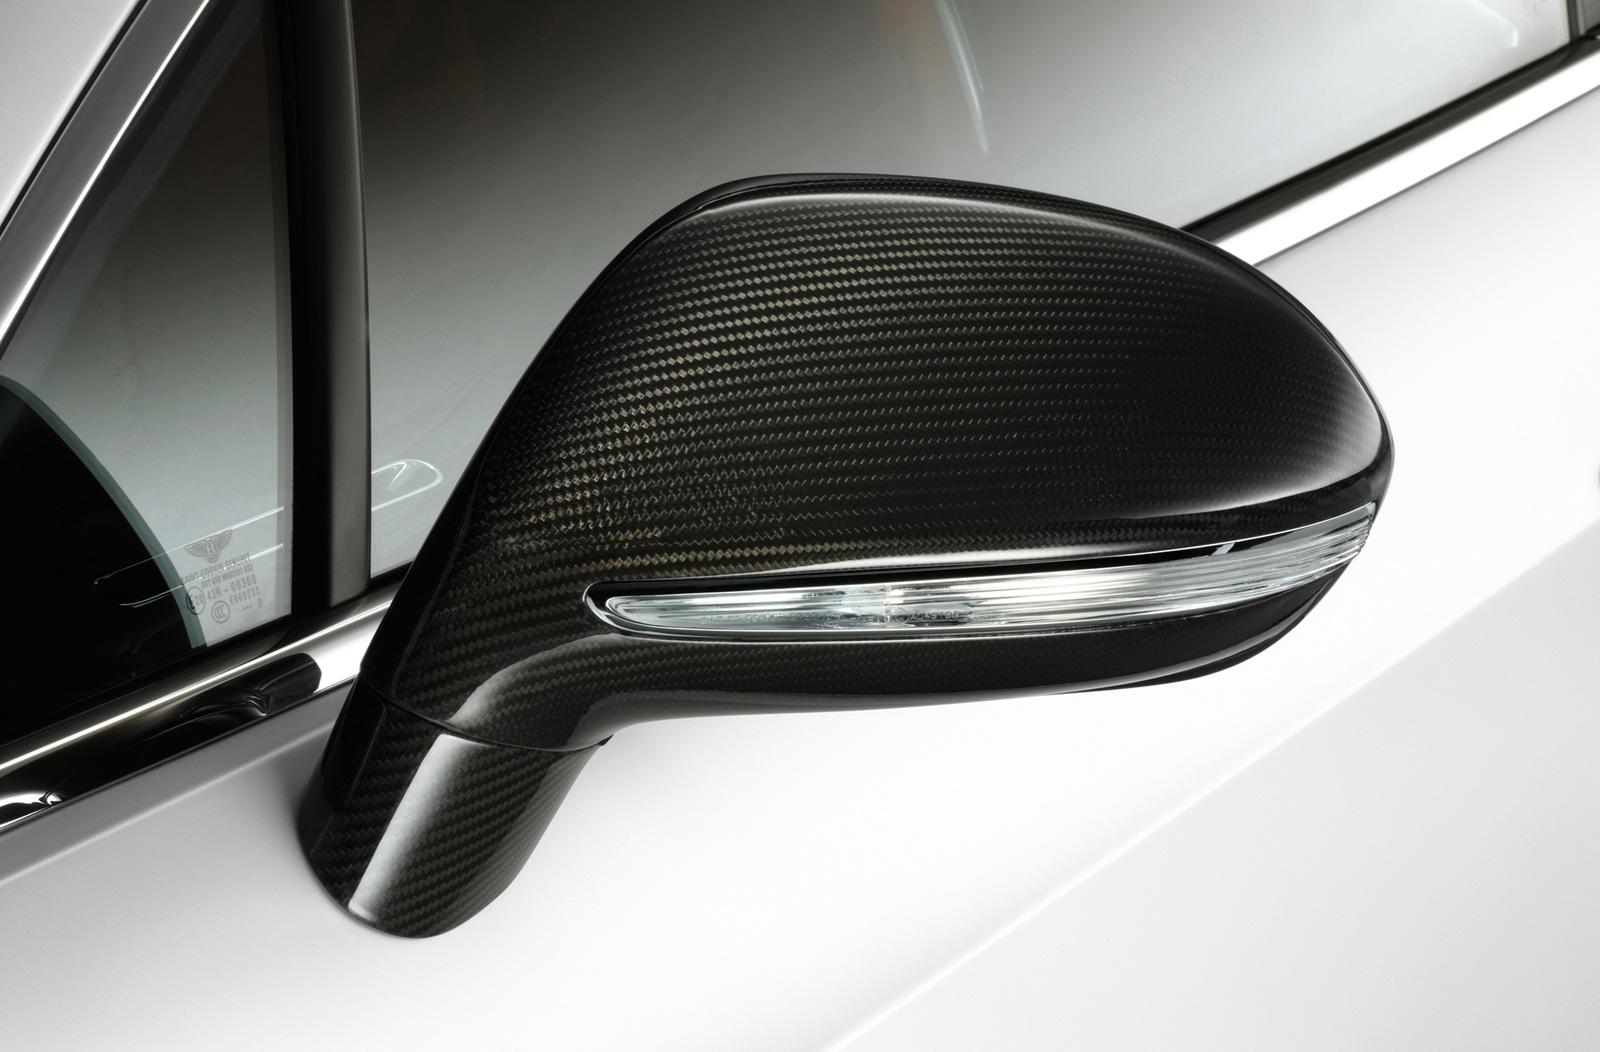 Stylish Carbon Fibre Door Mirror Cowls Available as Option